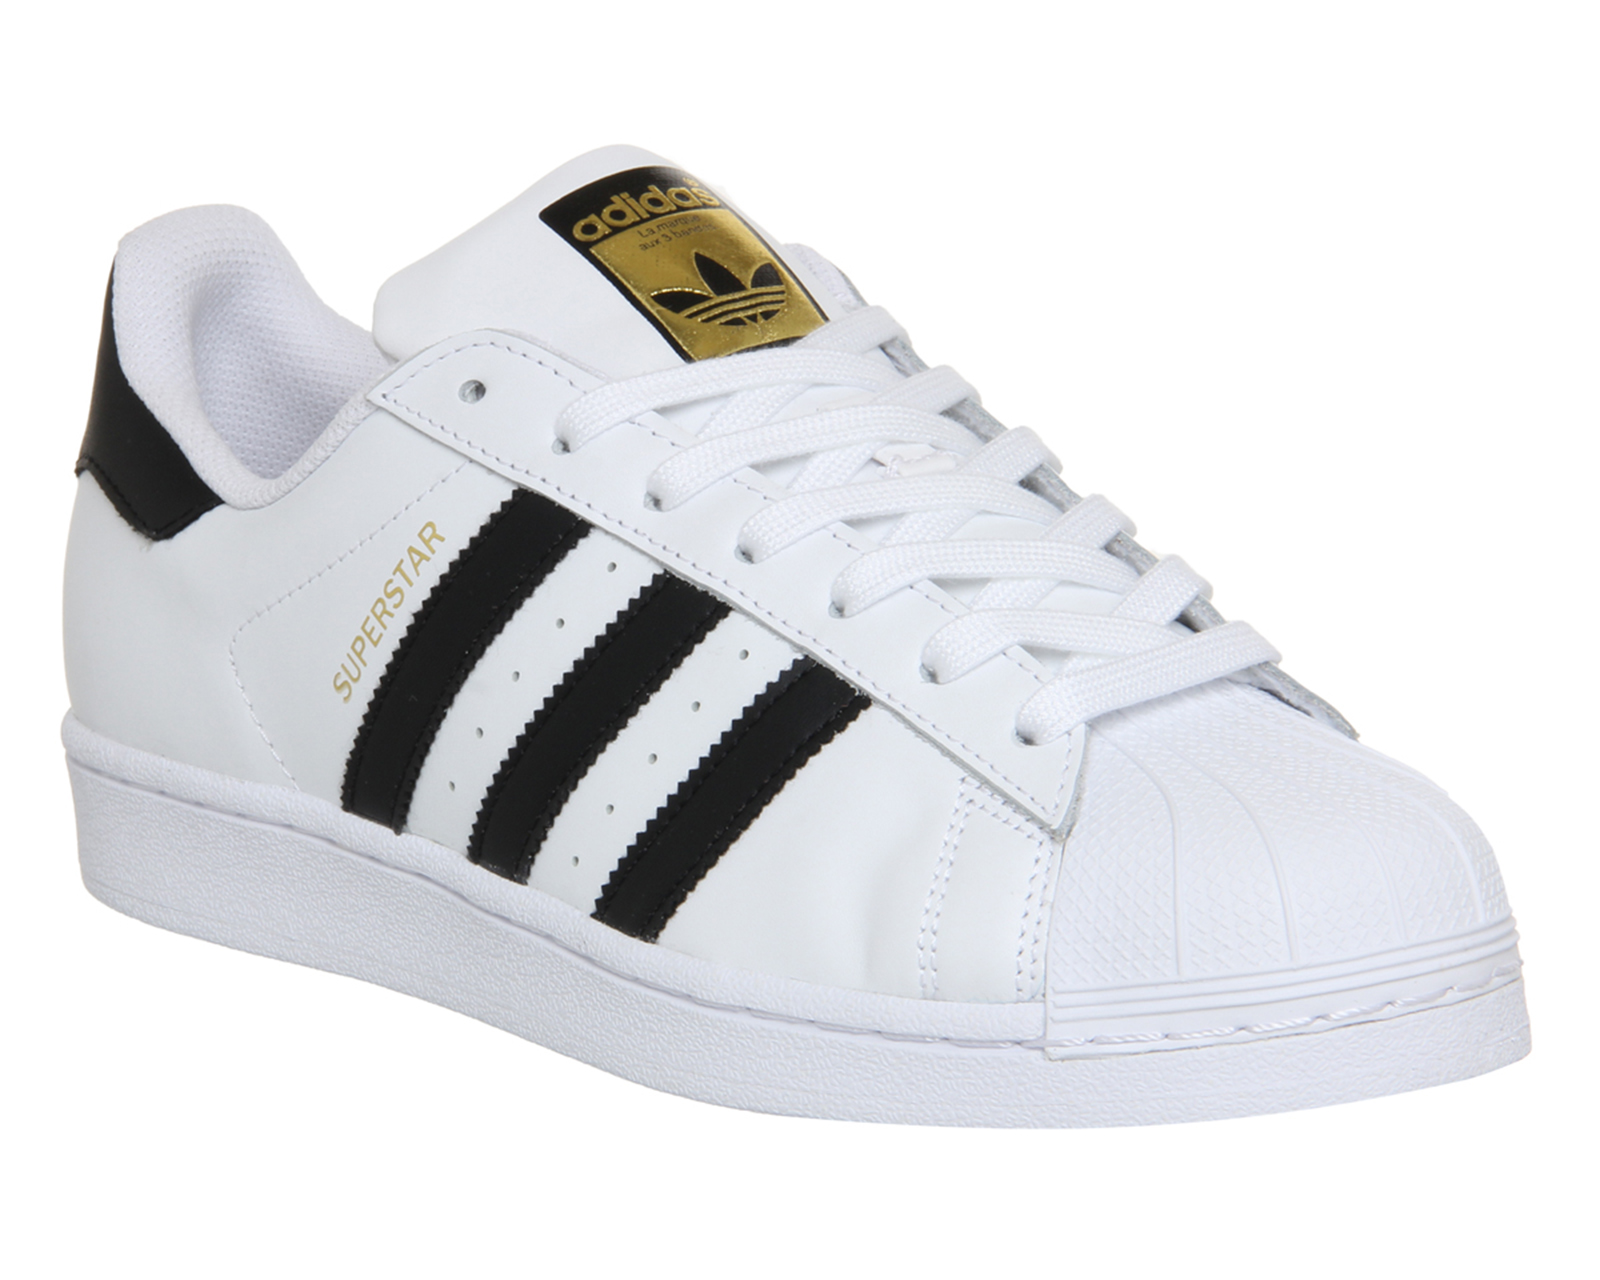 adidas superstar foundation shoes cheap